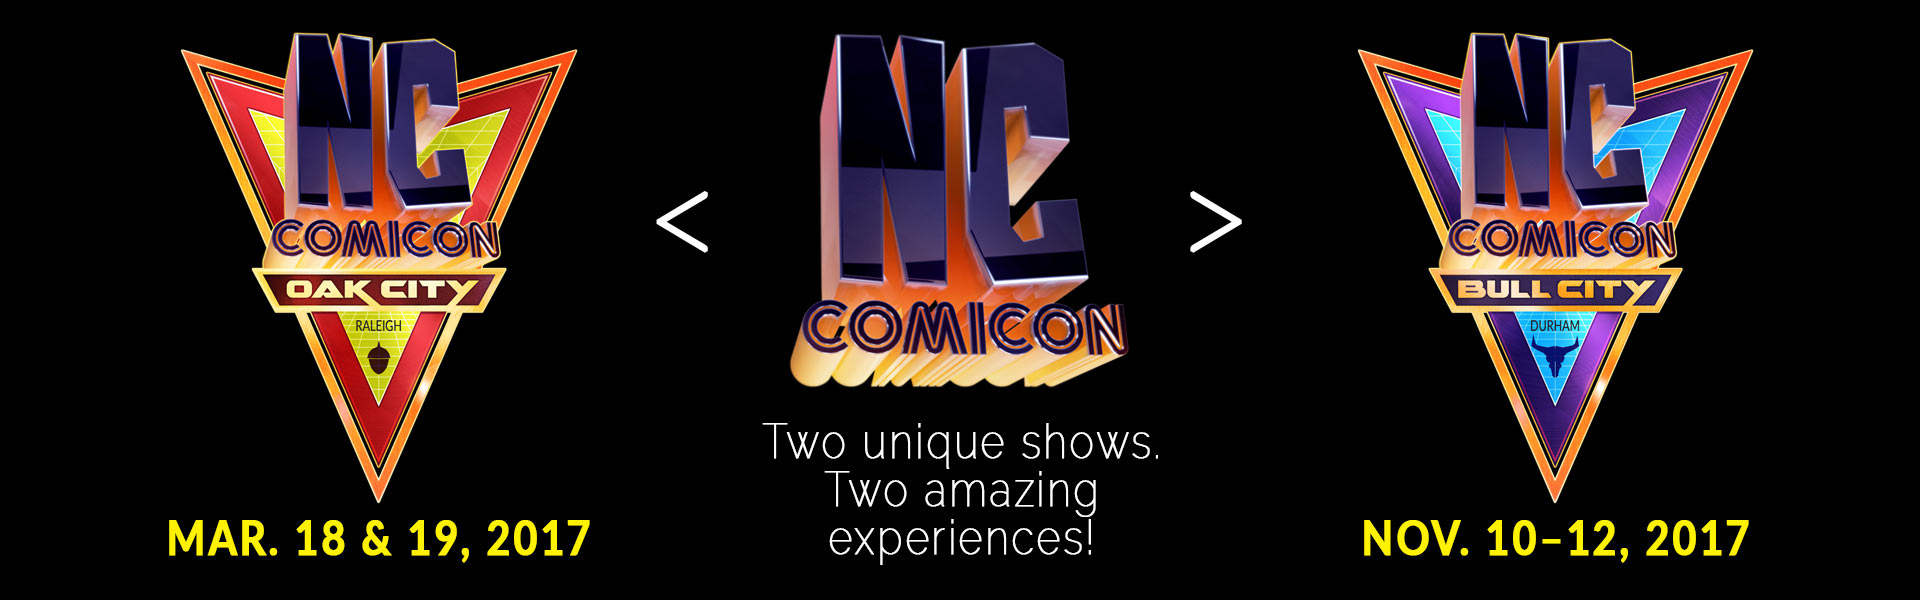 NC COMICON EXPANDS CONVENTION TO TWO ANNUAL SHOWS